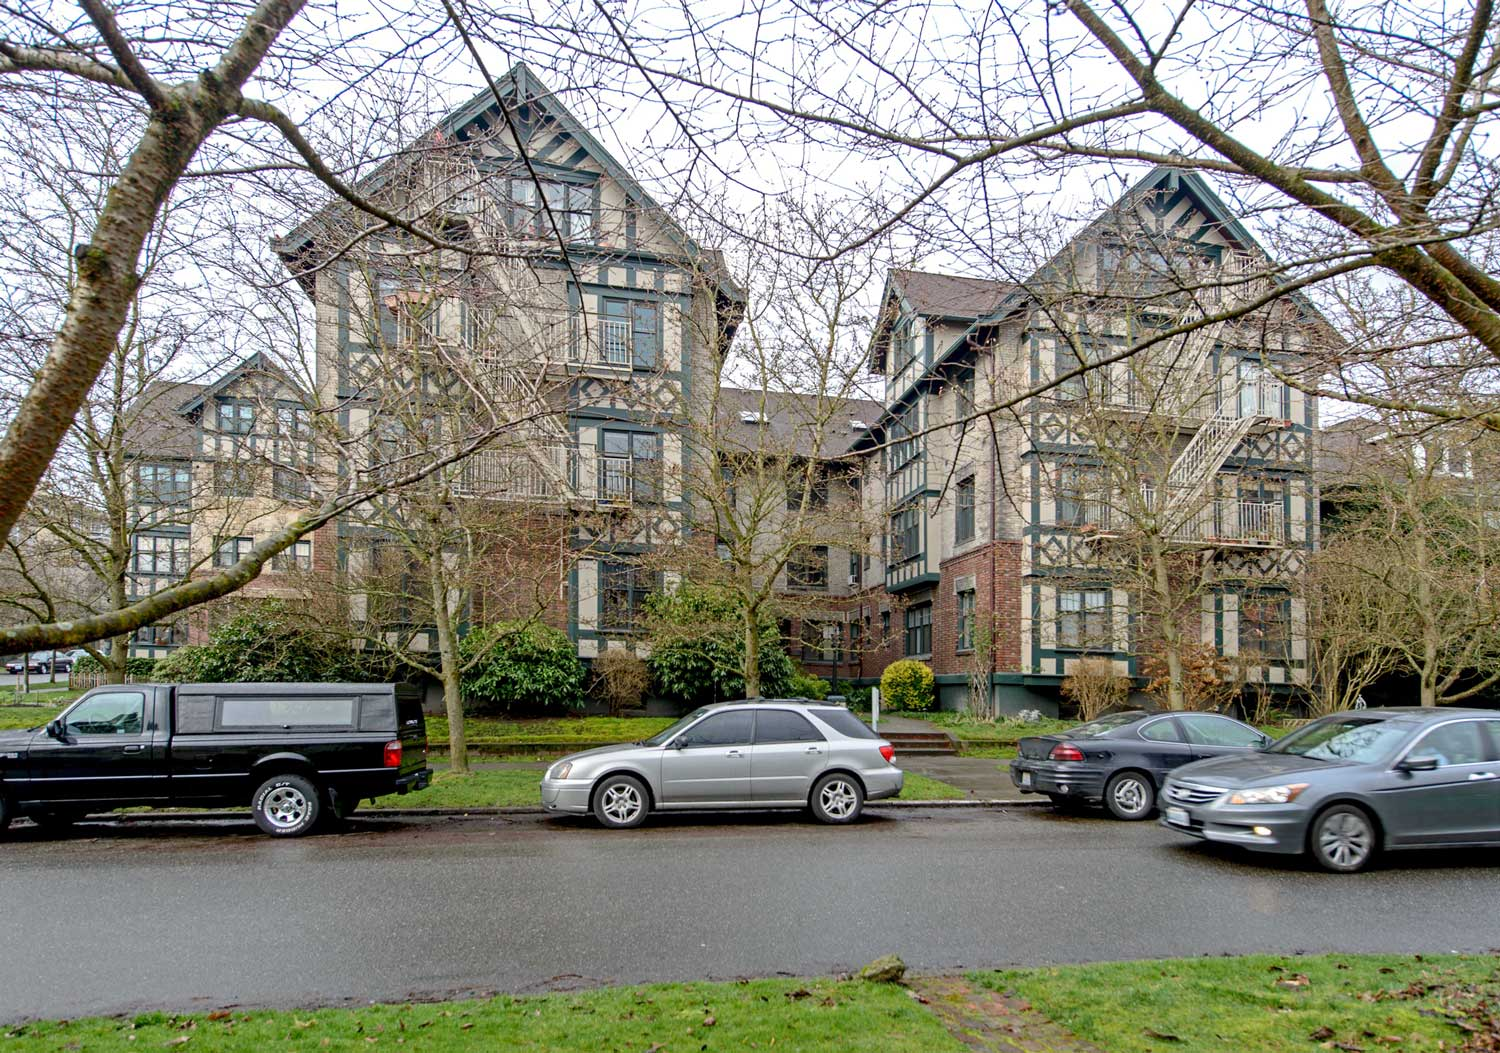 Bon Seattle Now U0026 Then: The Gables Apartments On Capitol Hill